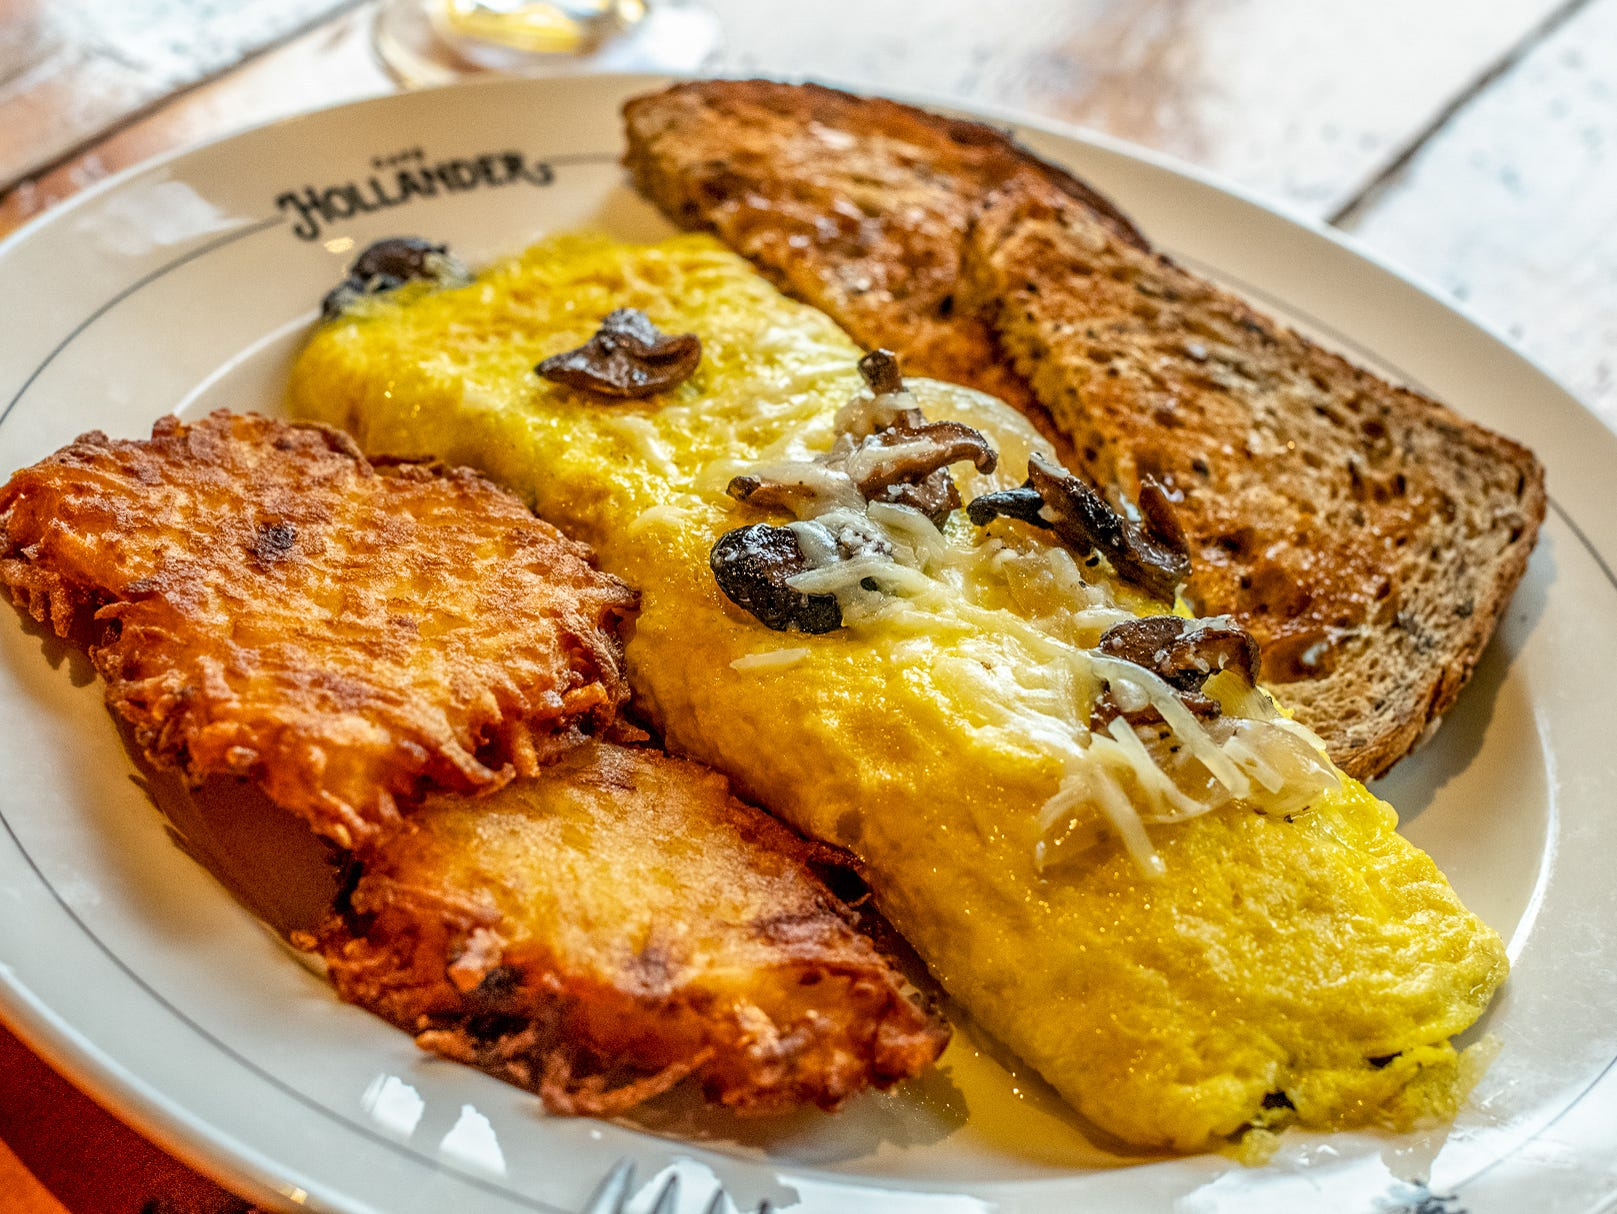 The Mushroom and Gruyère Omelette is made with Gruyère, roasted mushrooms and caramelized onions.